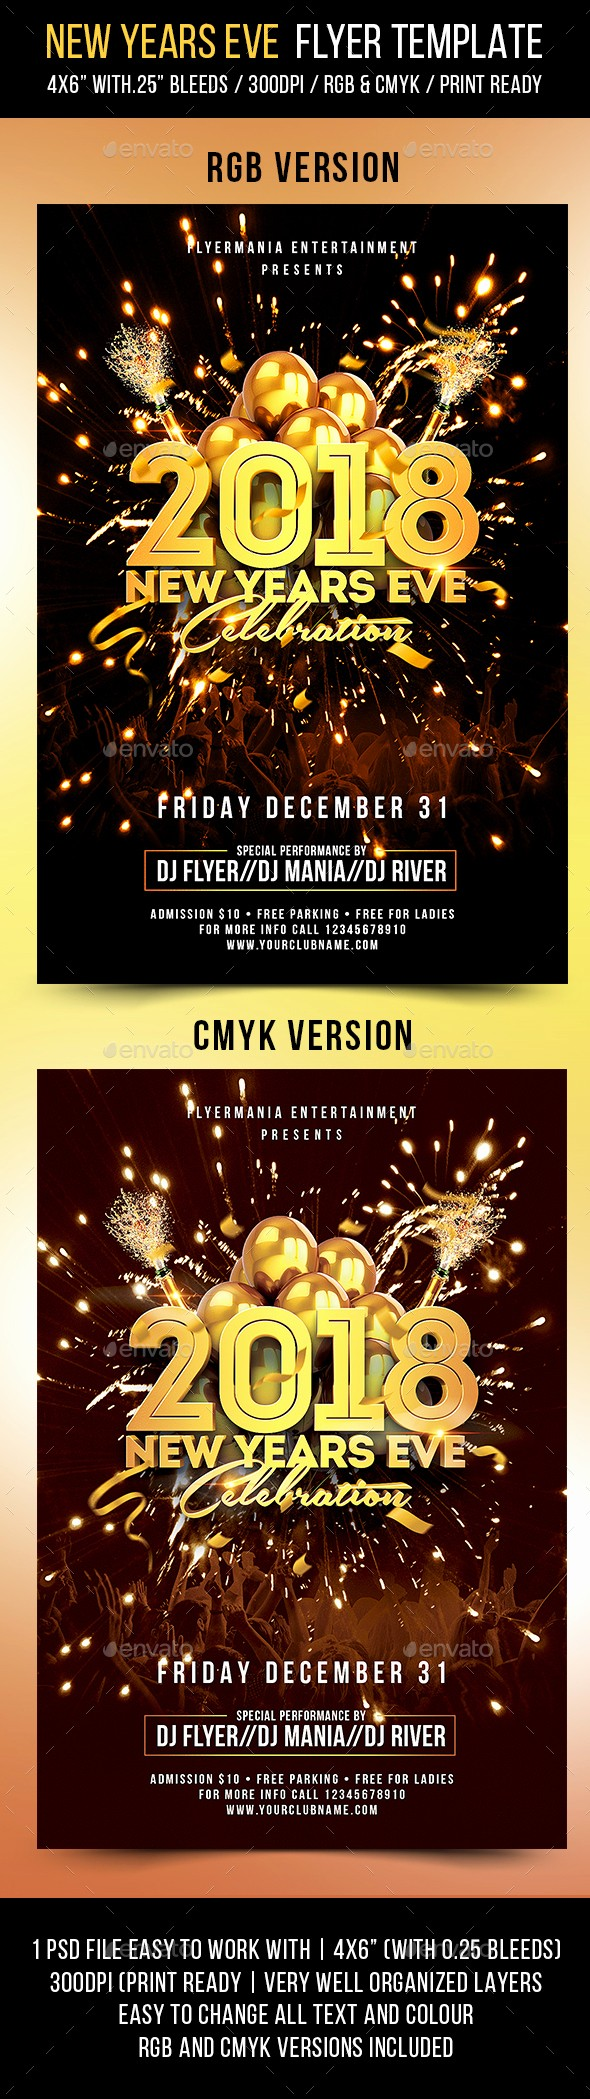 New Years Eve Menu Template Luxury New Years Eve Flyer Template by Flyermania